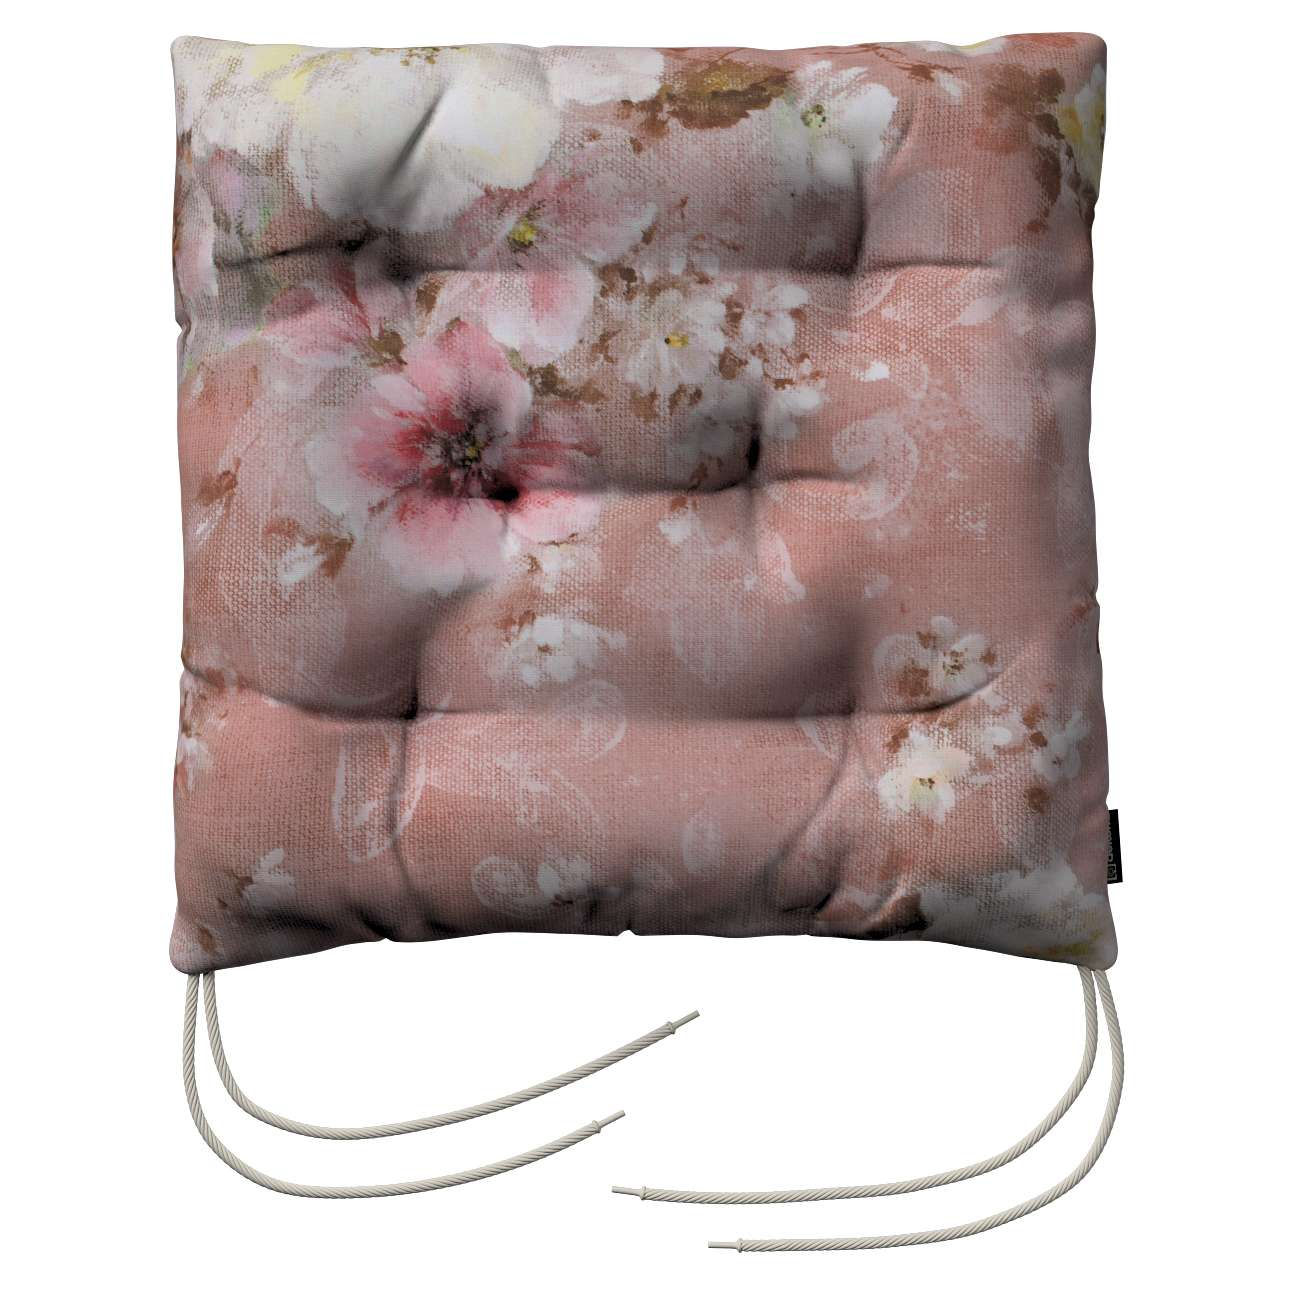 Jacek seat pad with ties 40 x 40 x 8 cm (16 x 16 x 3 inch) in collection Monet, fabric: 137-83